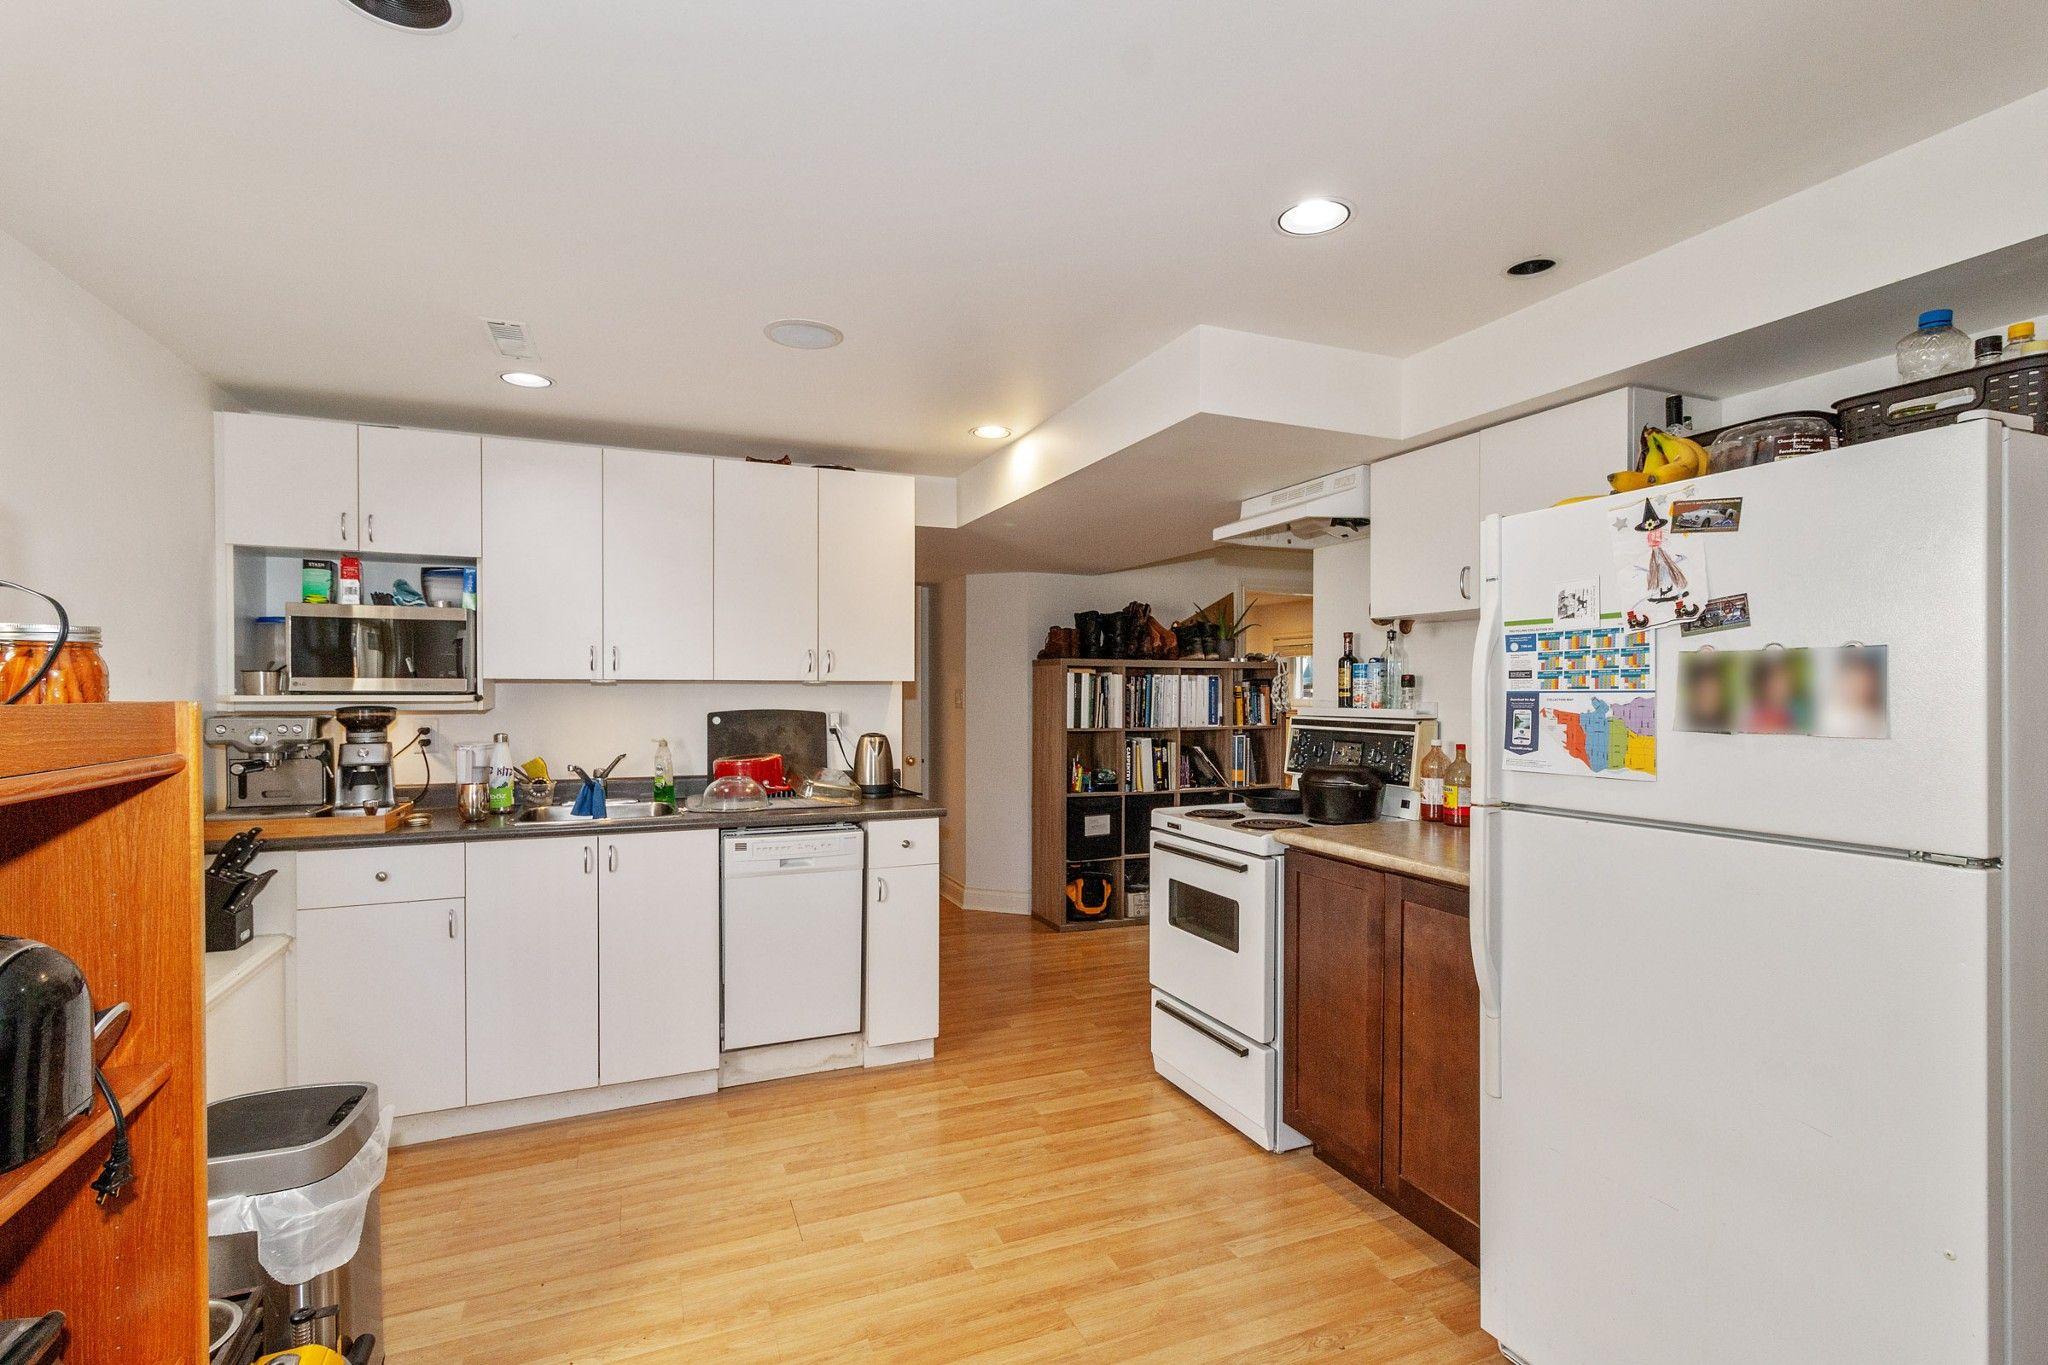 Photo 15: Photos: 3742 ONTARIO Street in Vancouver: Main House for sale (Vancouver East)  : MLS®# R2580004